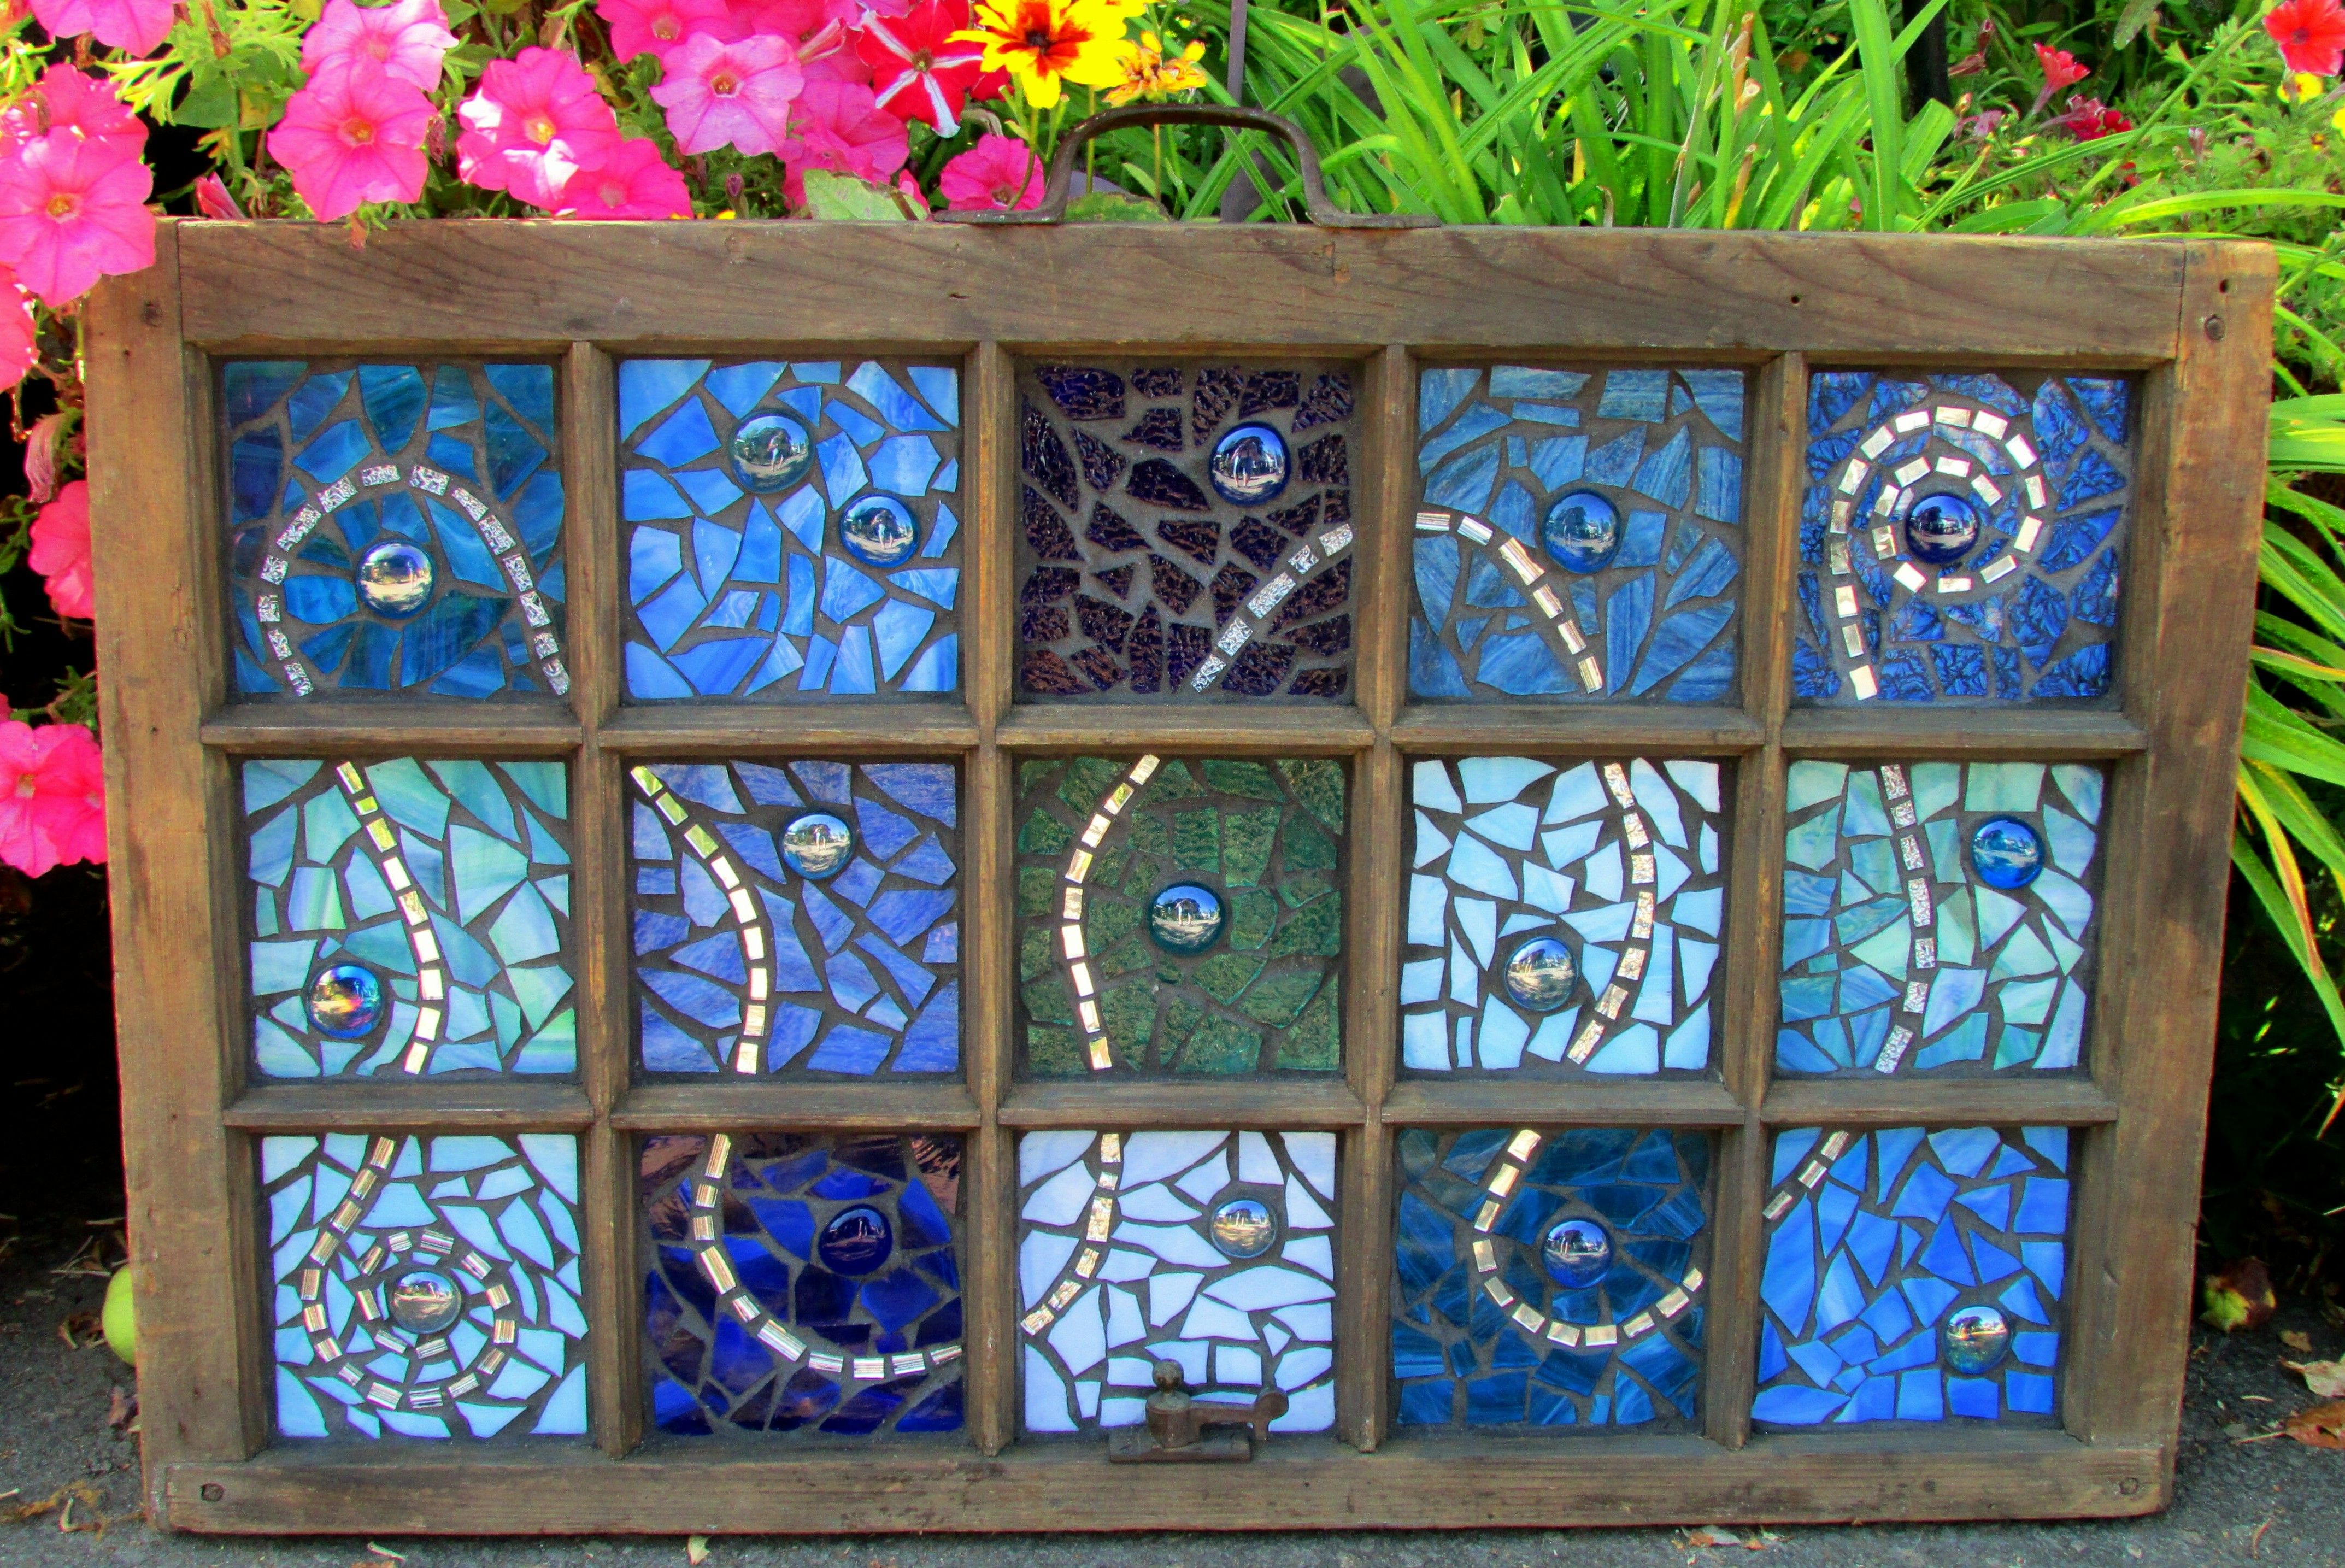 Blues.....old window.....stained glass mosaic.